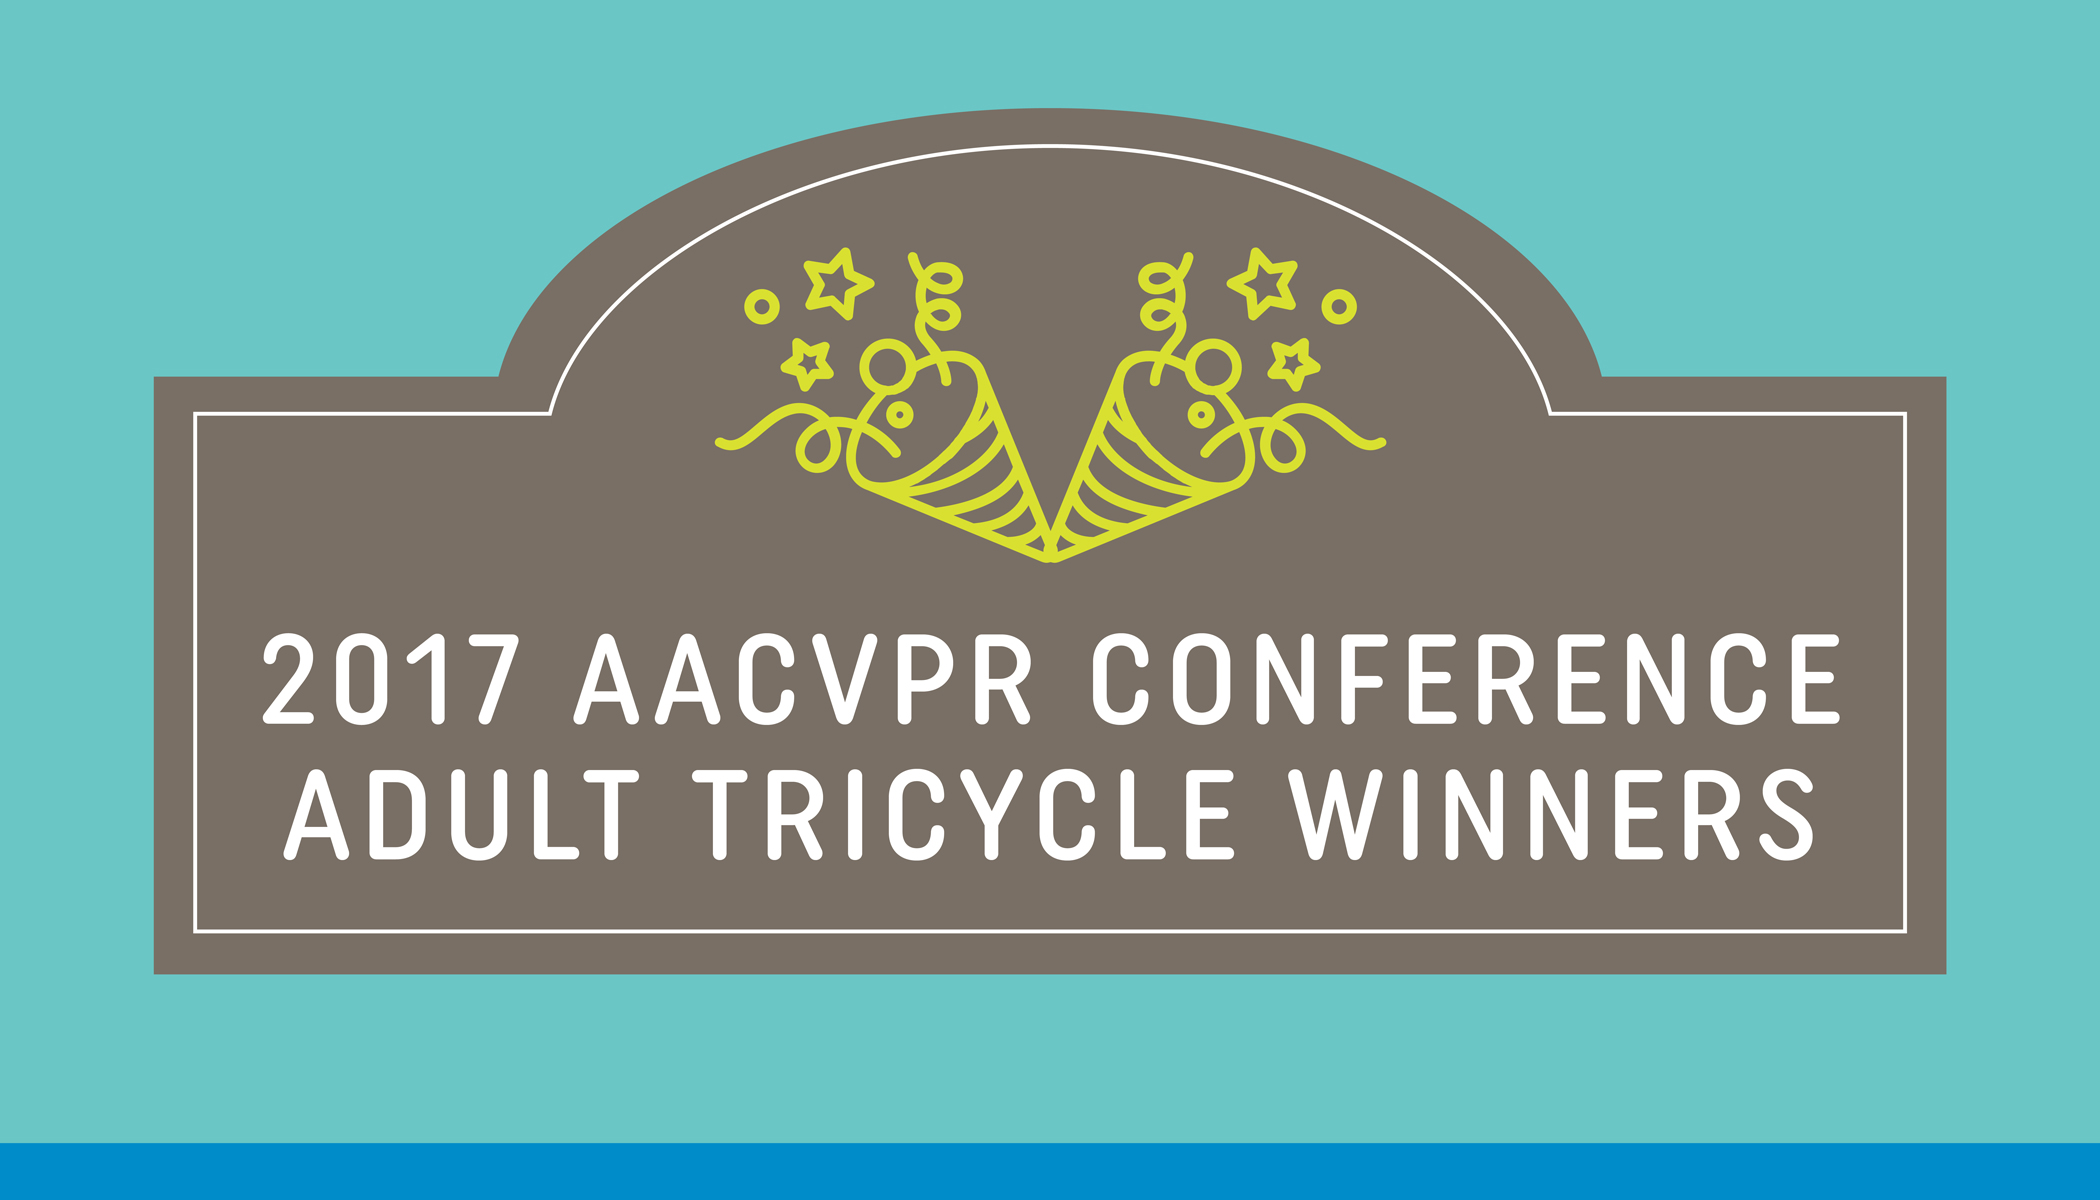 Adult Tricycle Winners at the 2017 AACVPR Annual Meeting